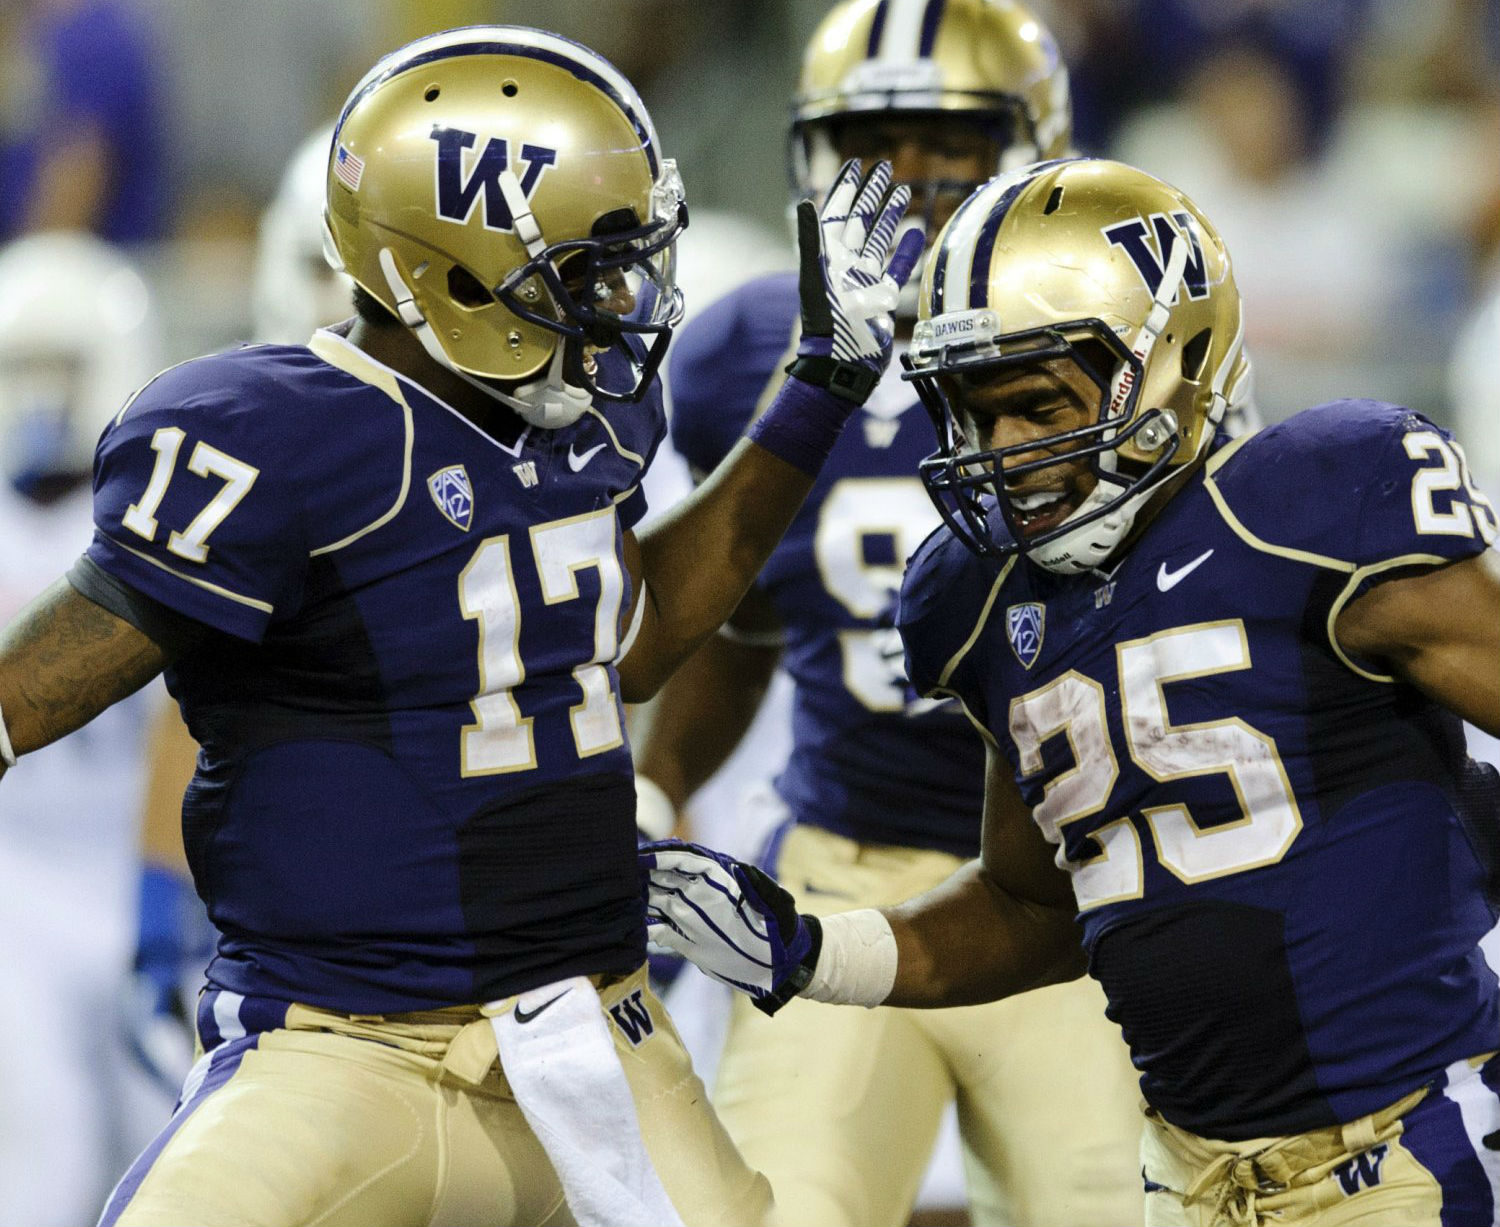 Washington Huskies 2013 college football seattle f wallpaper 1500x1227